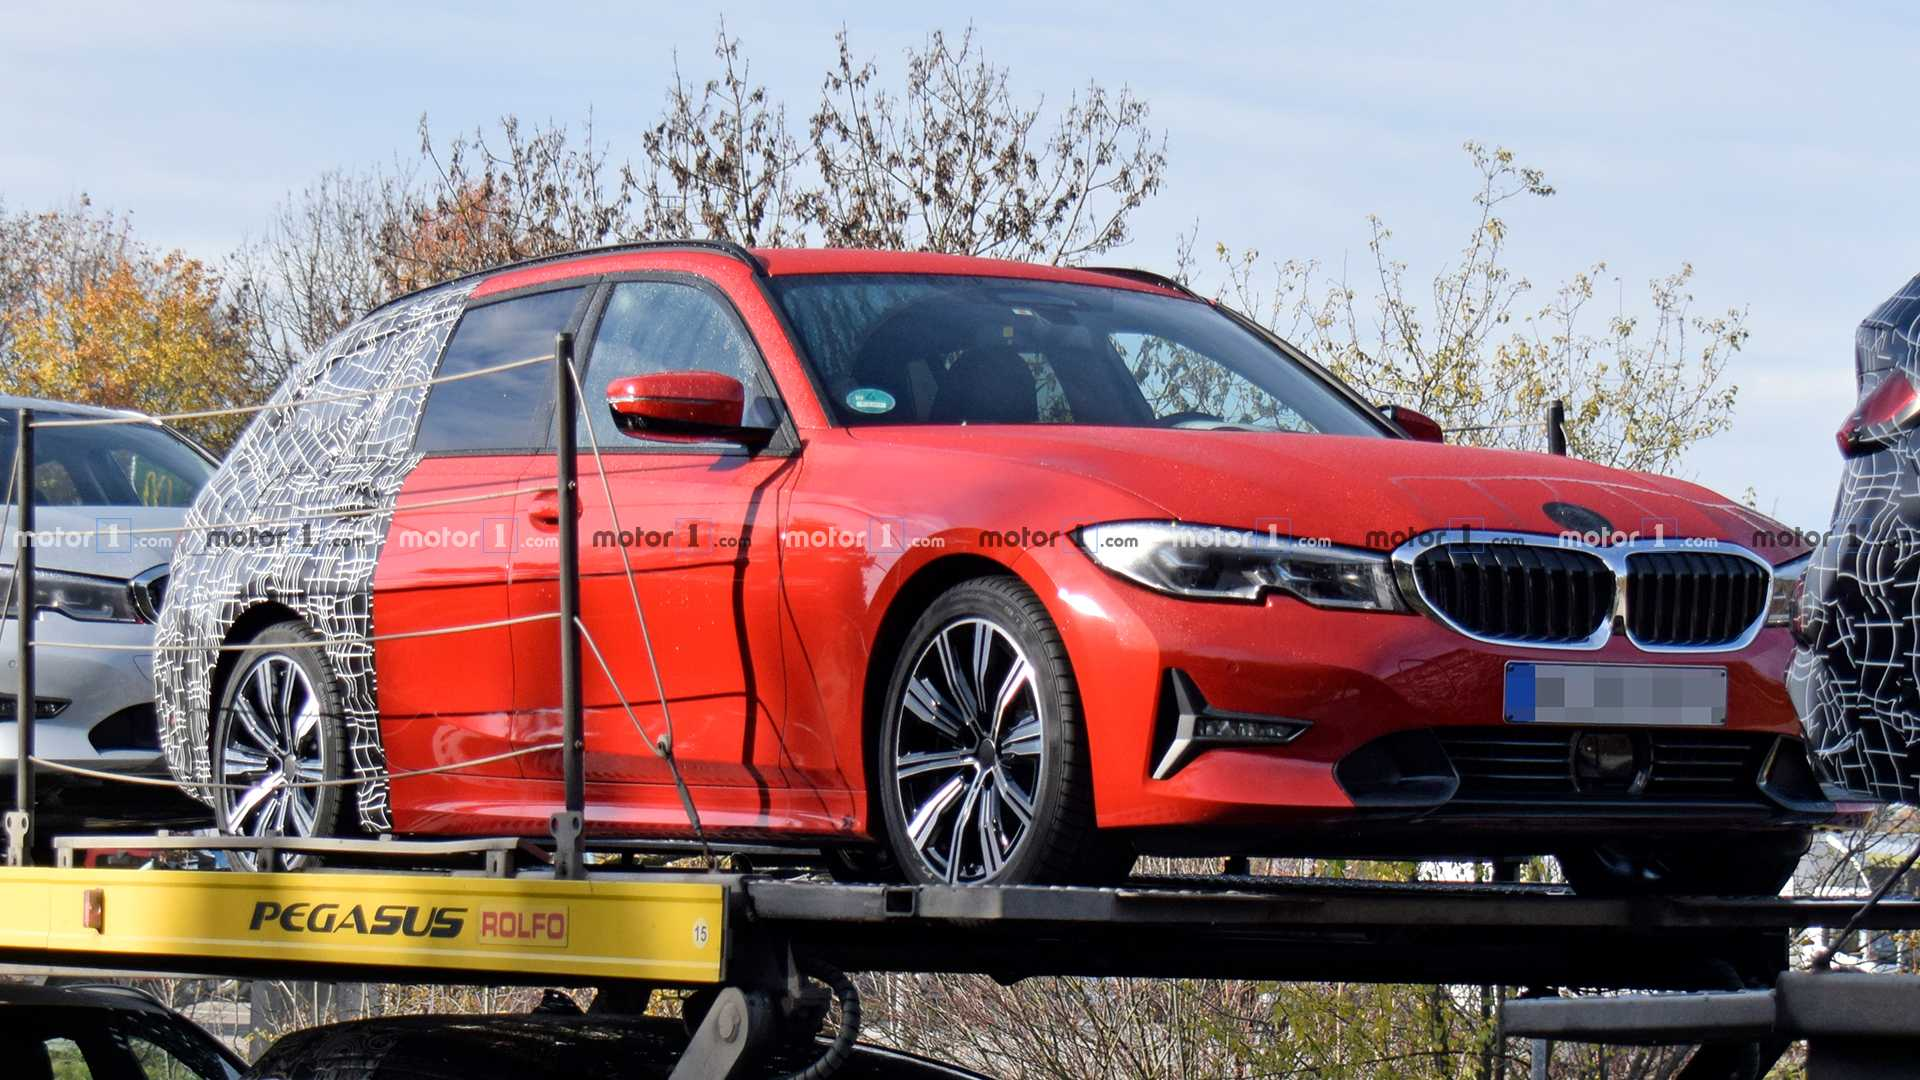 85 New Spy Shots BMW 3 Series Interior